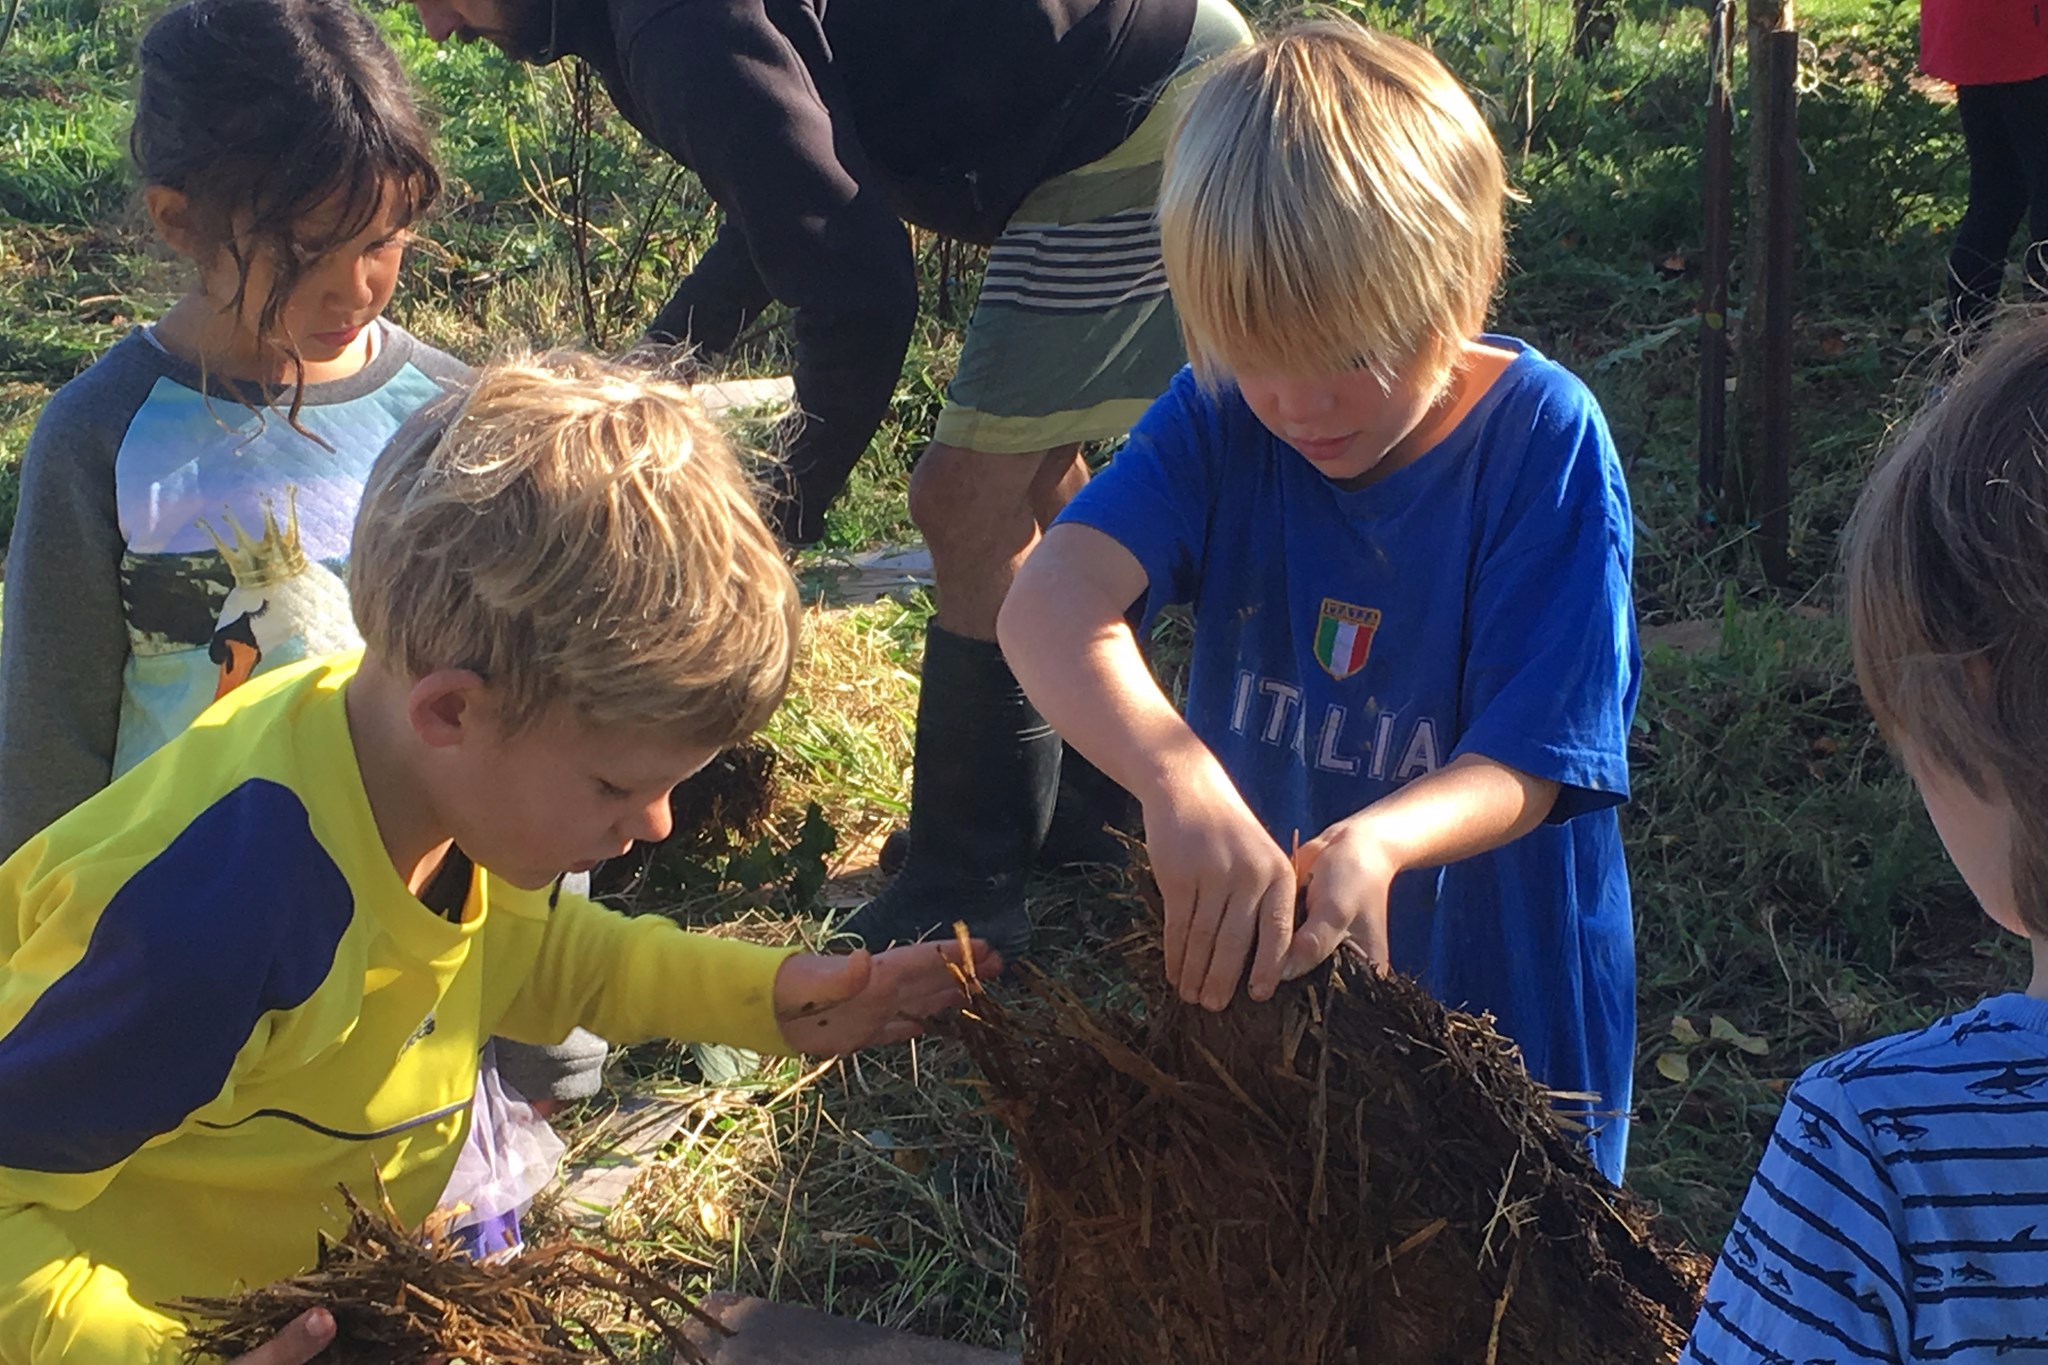 Gift a fruit tree to a Wairarapa school - A donation of $30 will allow us to plant a fruit tree in a wairarapa school of your choice